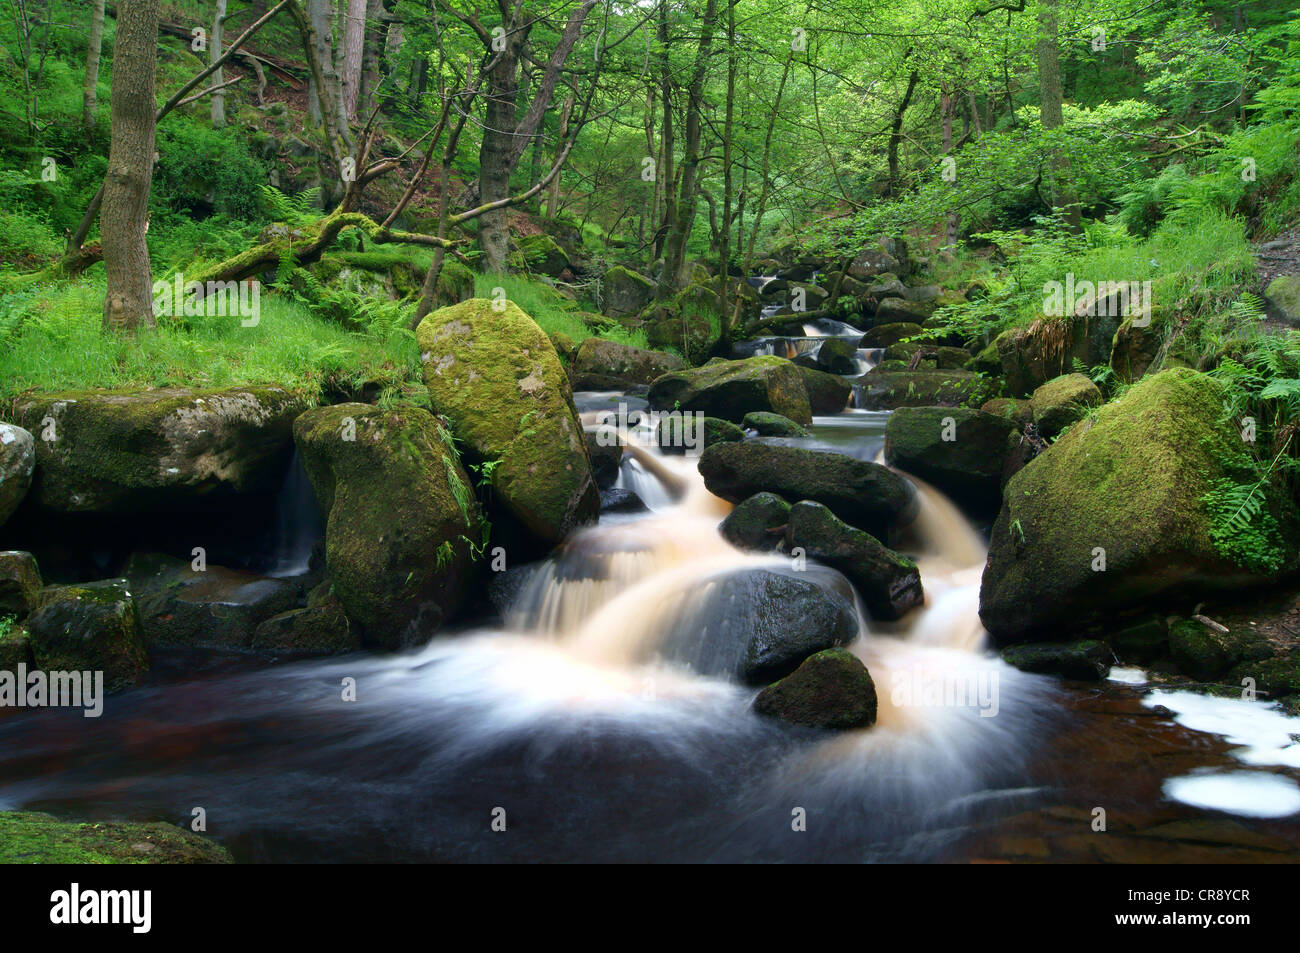 UK,Derbyshire,Peak District,Burbage Brook Flowing Through Padley Gorge - Stock Image